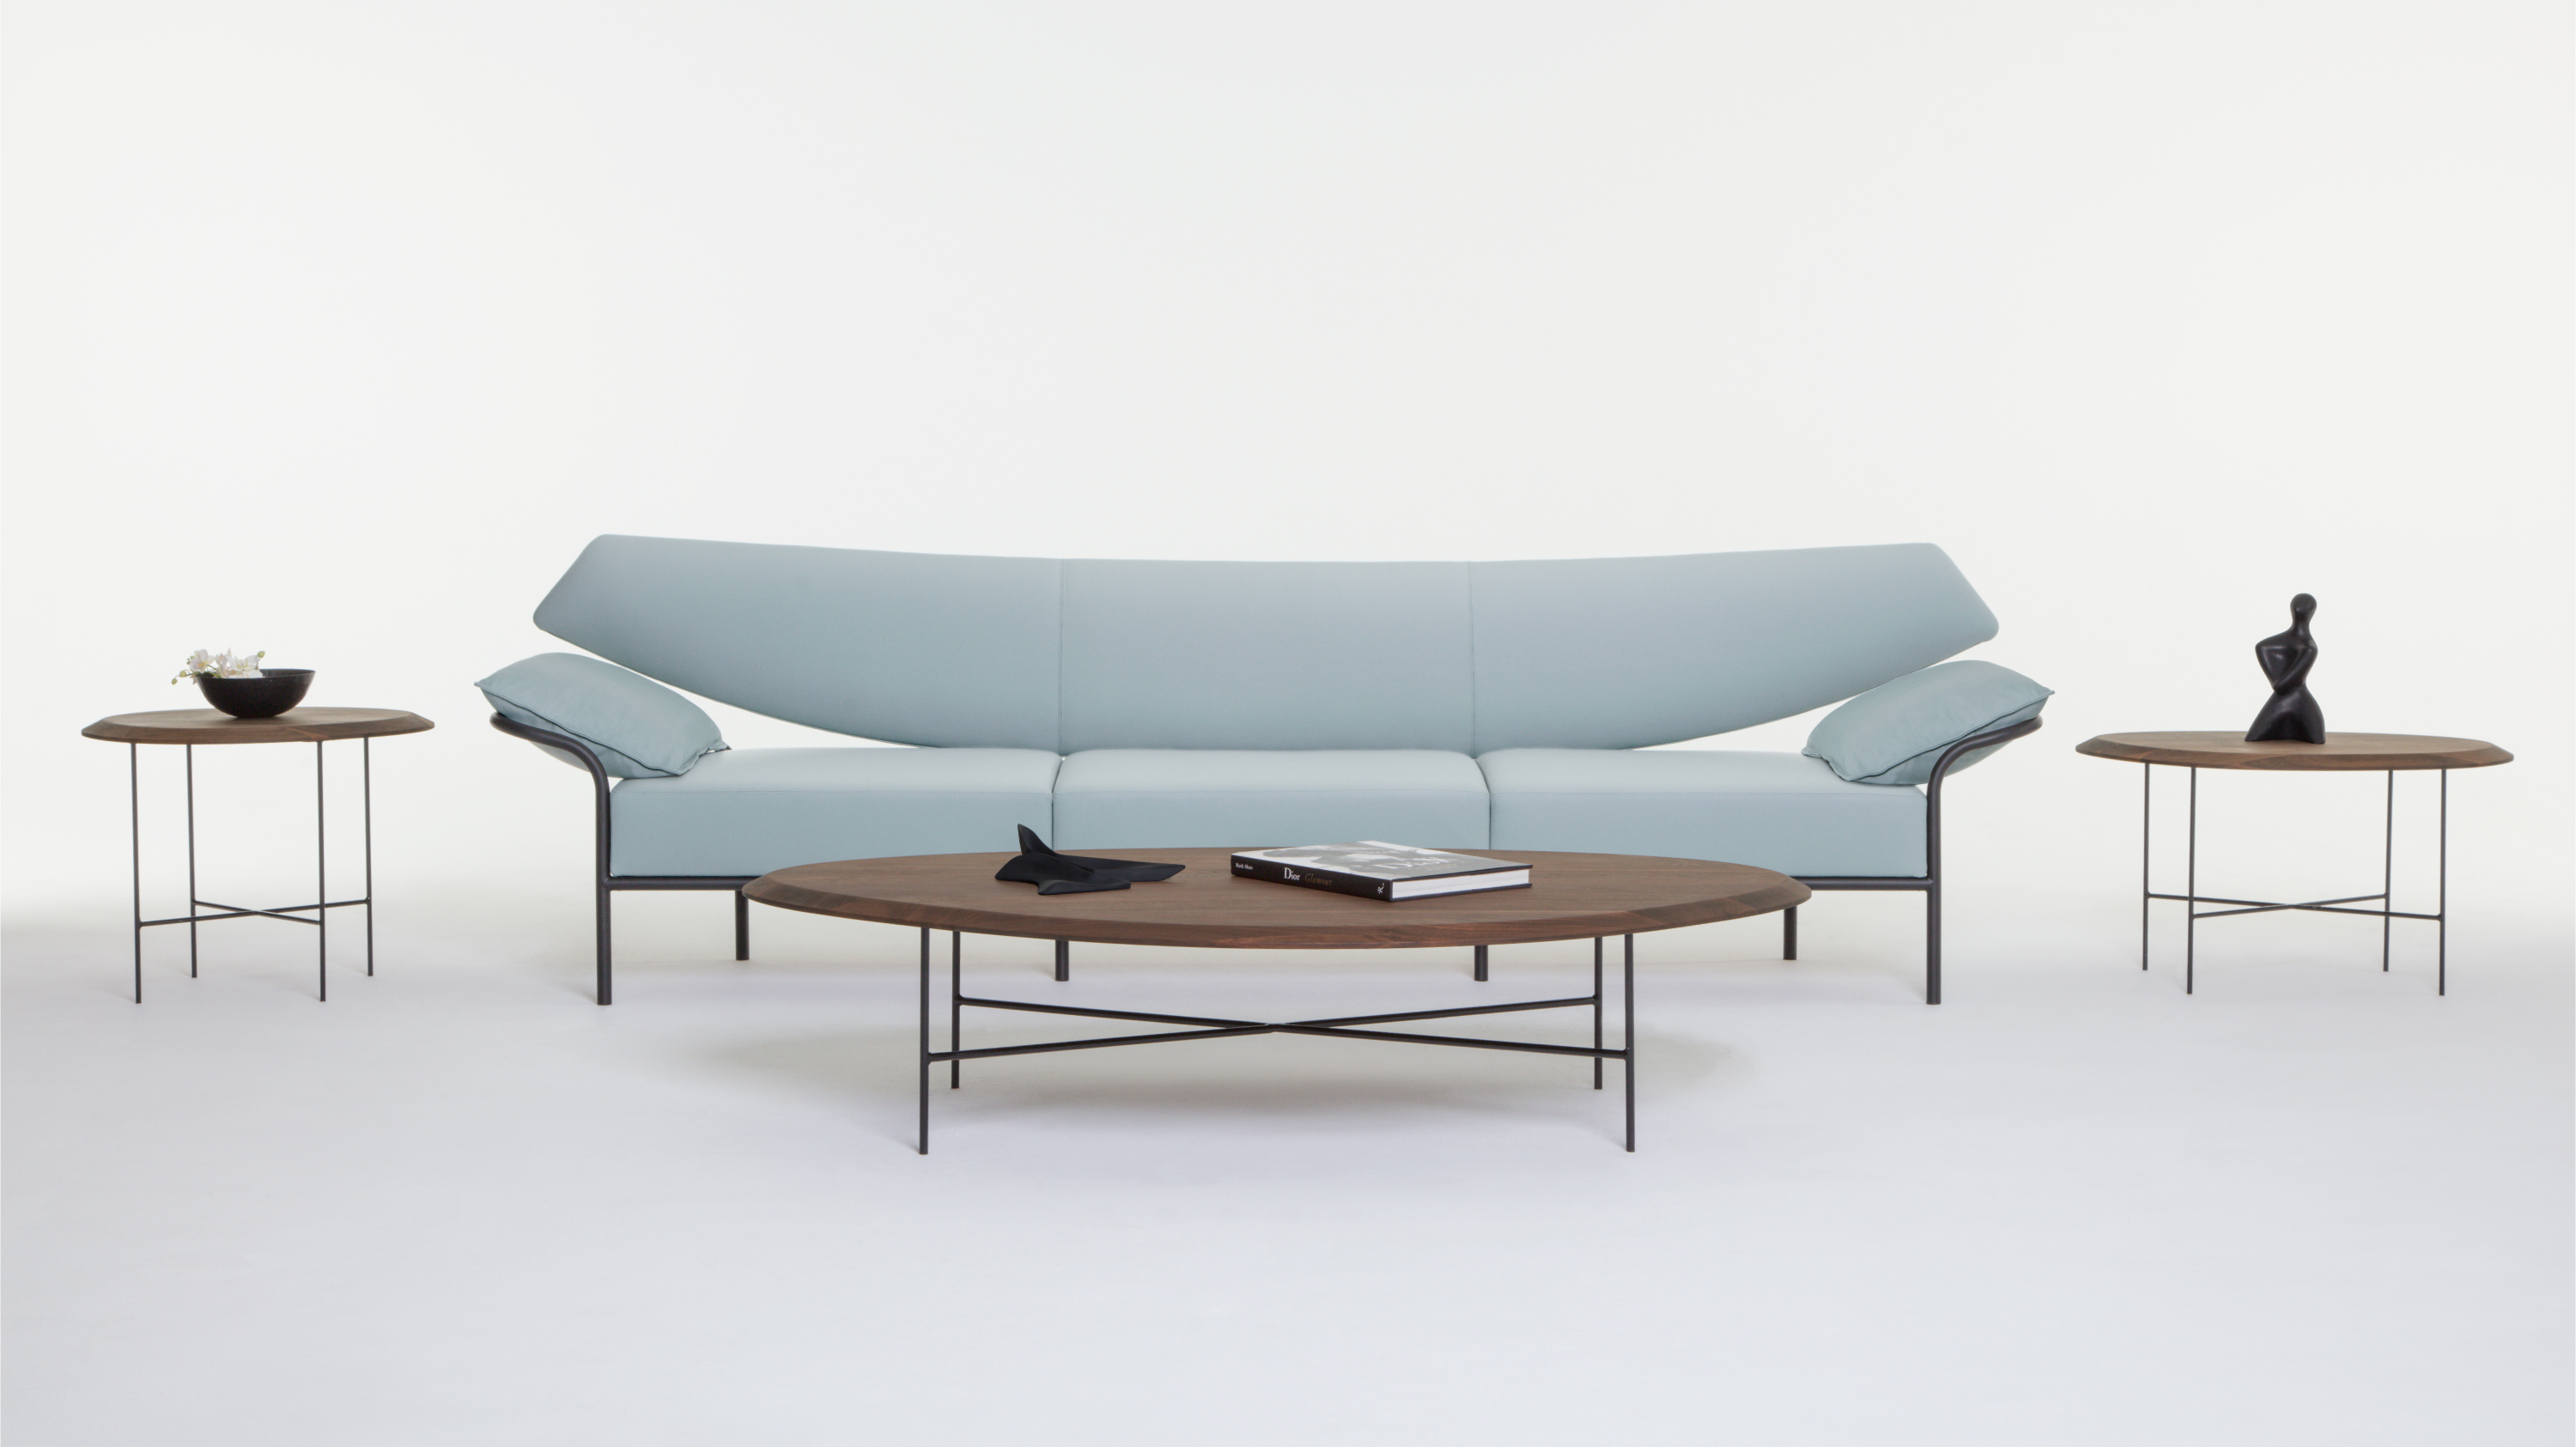 Terry crews launches modern furniture collection